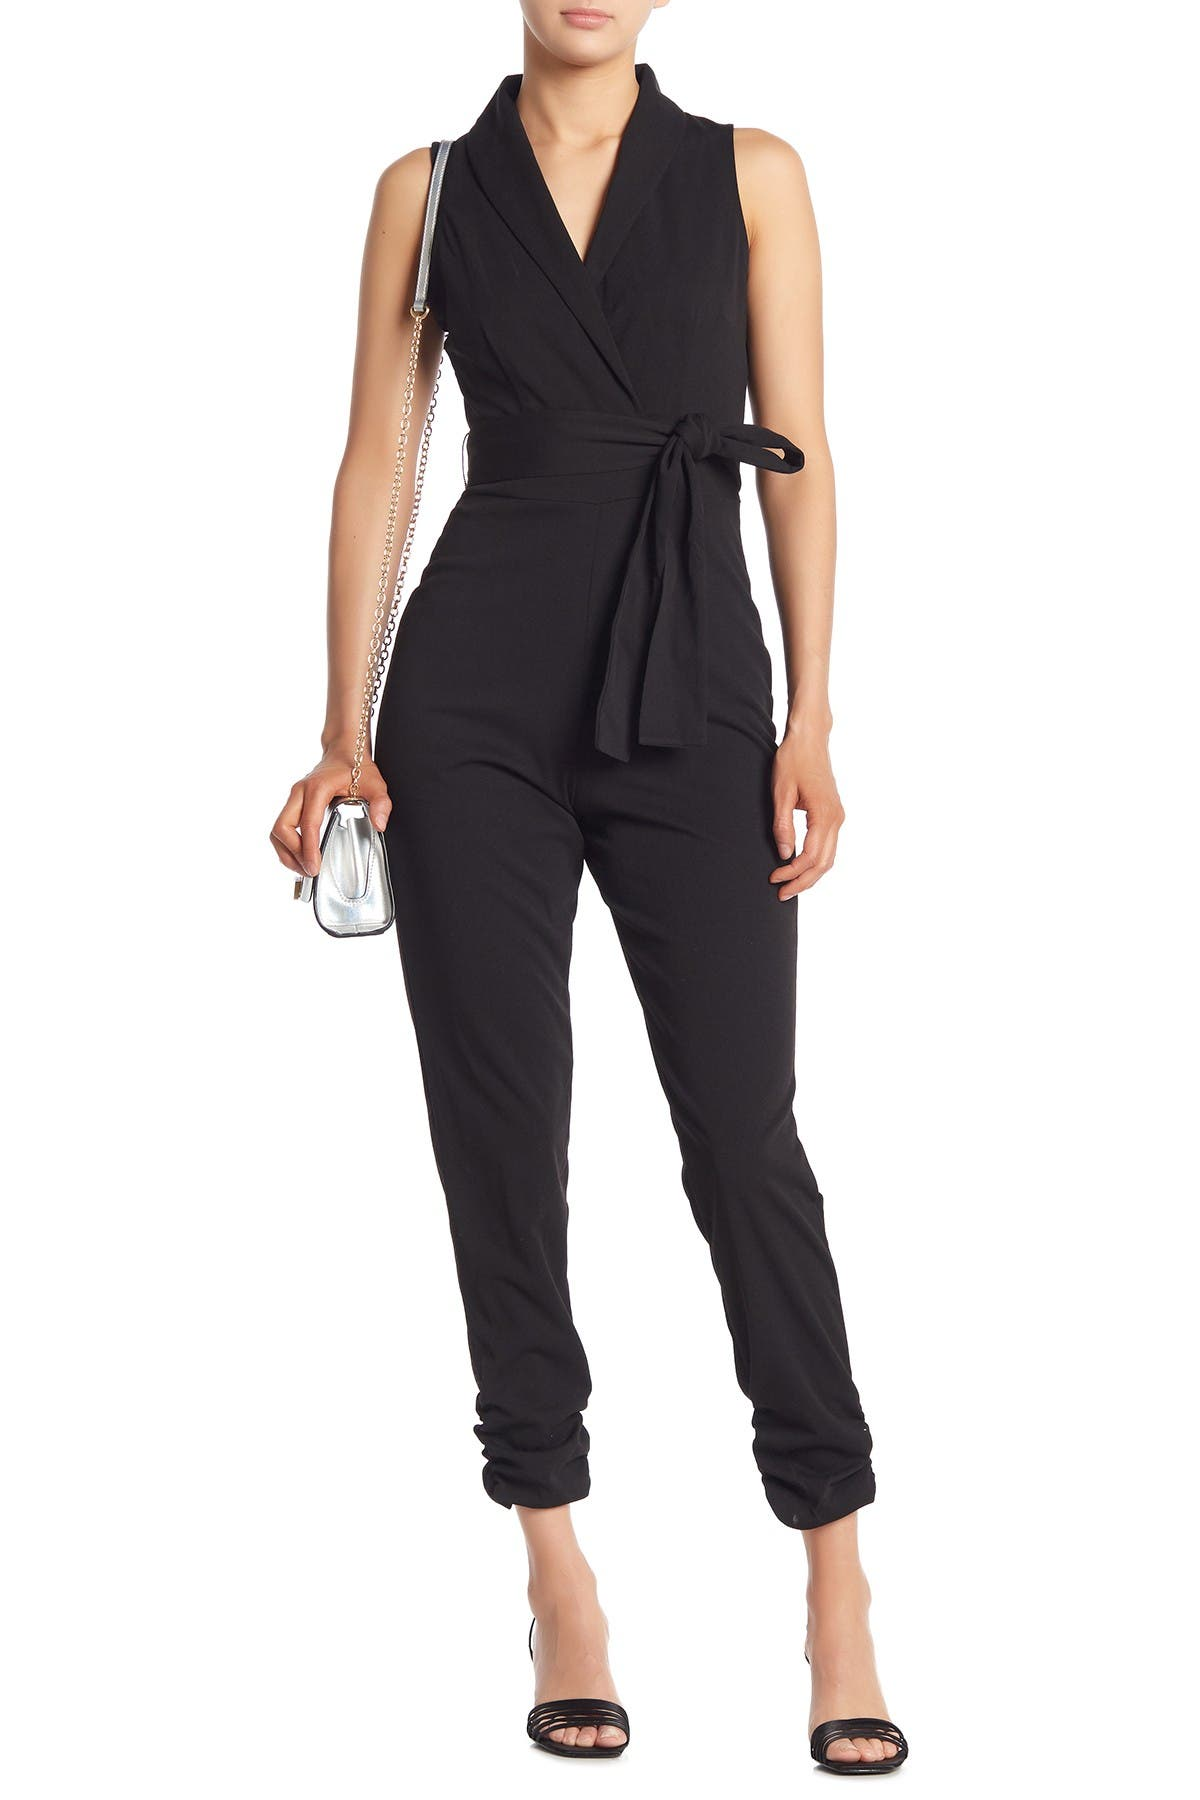 Image of BAILEY BLUE Belted Sleeveless Jumpsuit